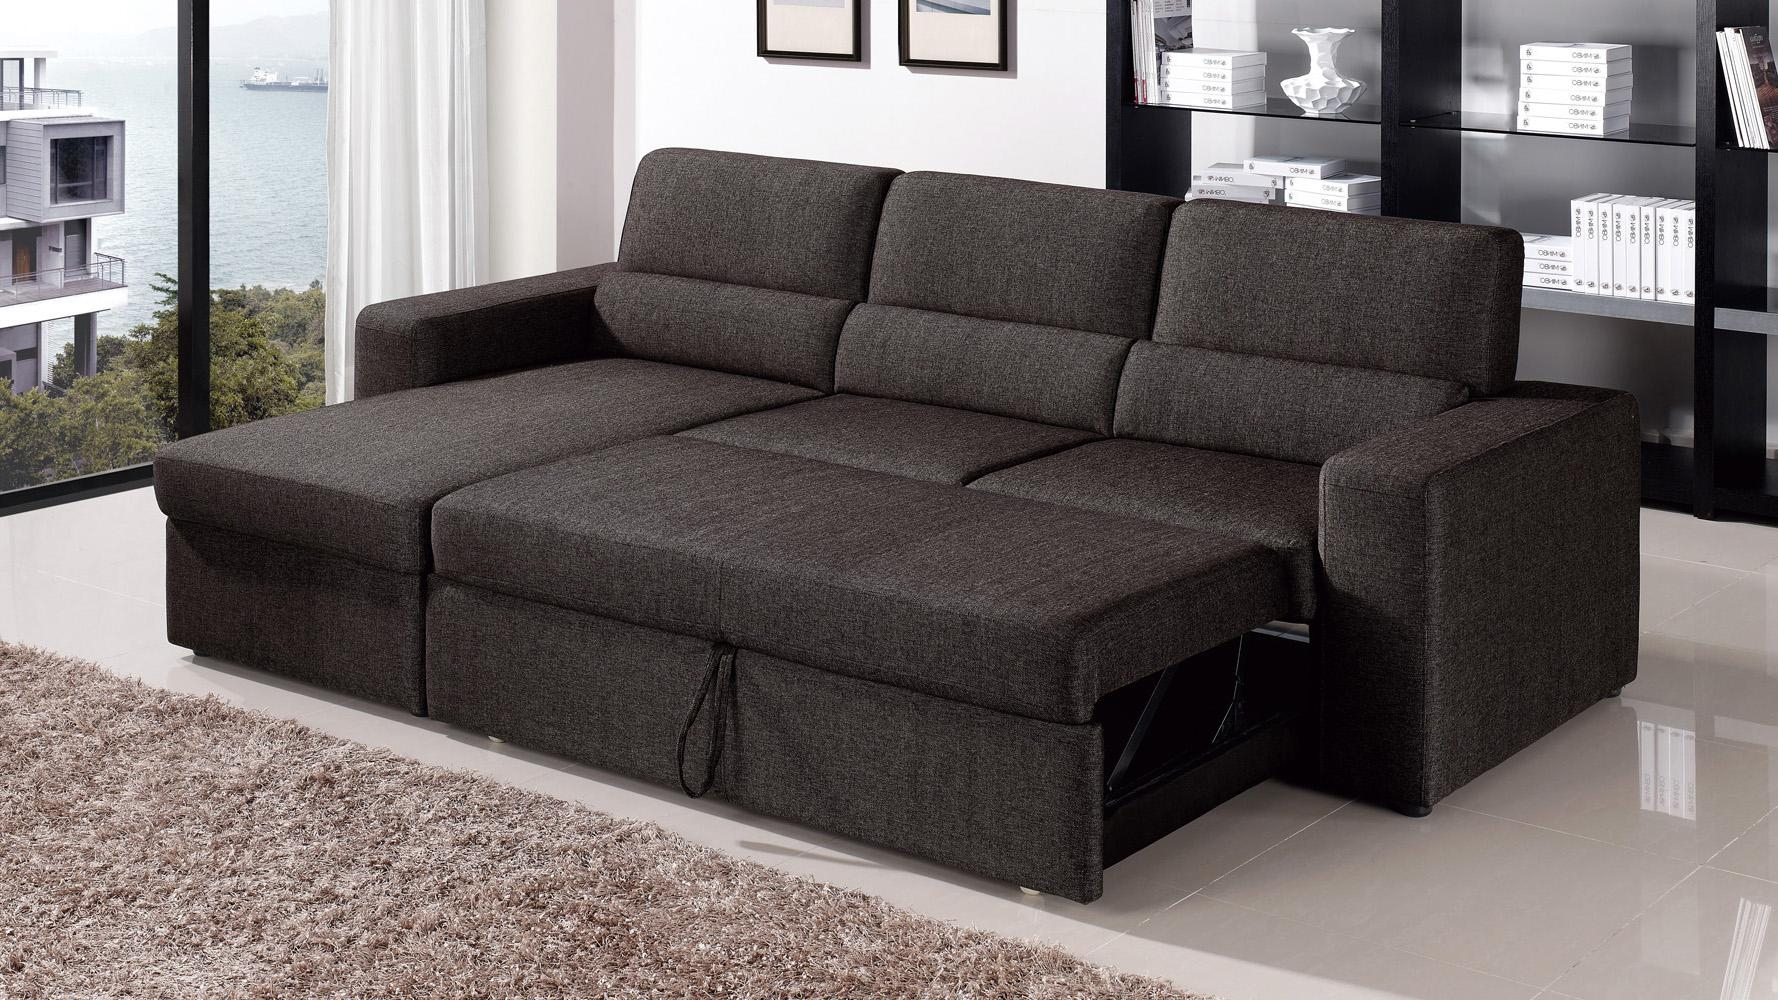 Black/brown Clubber Sleeper Sectional Sofa | Zuri Furniture With Regard To Sleeper Sectional Sofas (View 7 of 20)